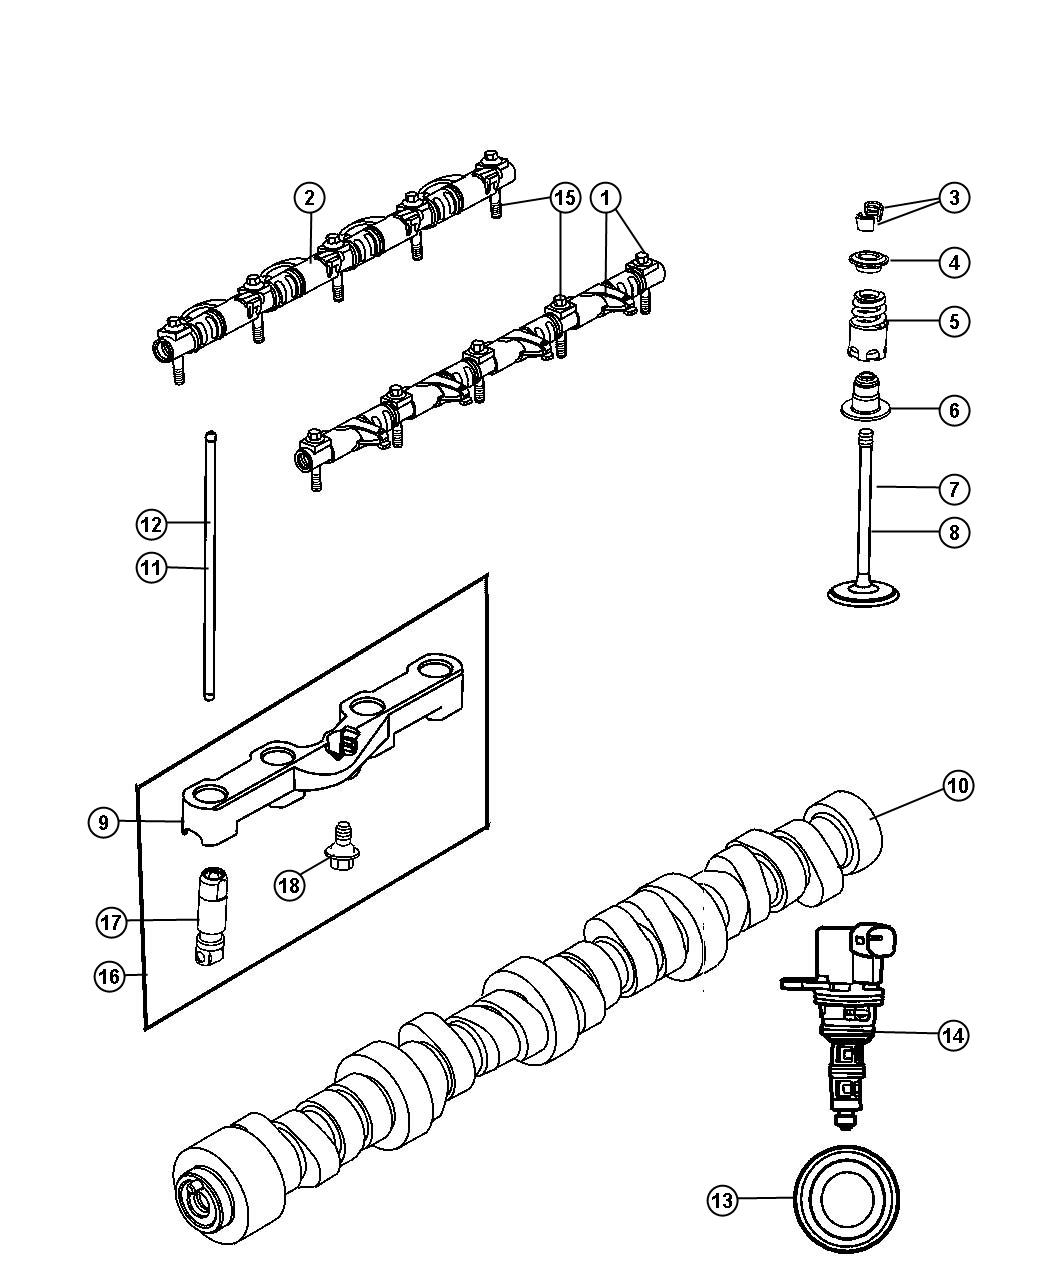 Dodge Magnum Lifters And Yoke Front Hydraulic Engine